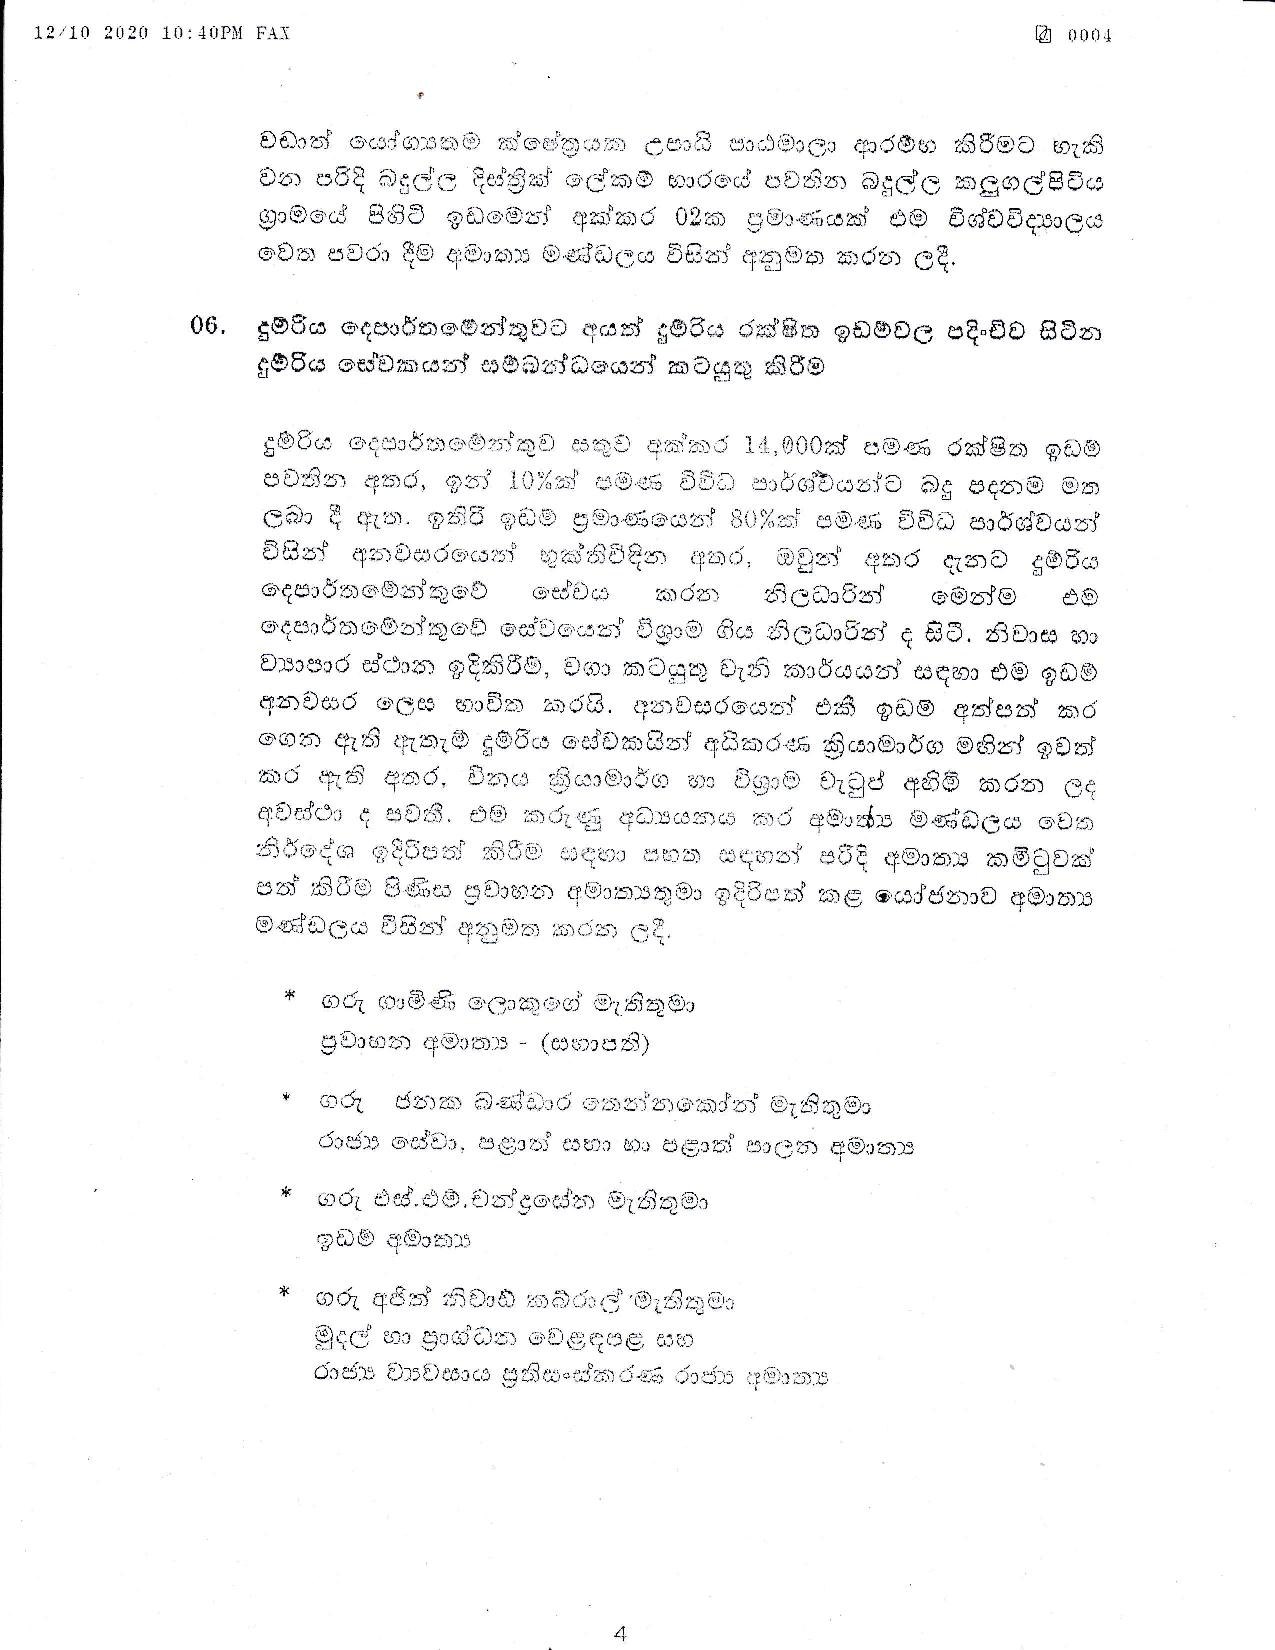 Cabinet Decision on 12.10.2020 page 004